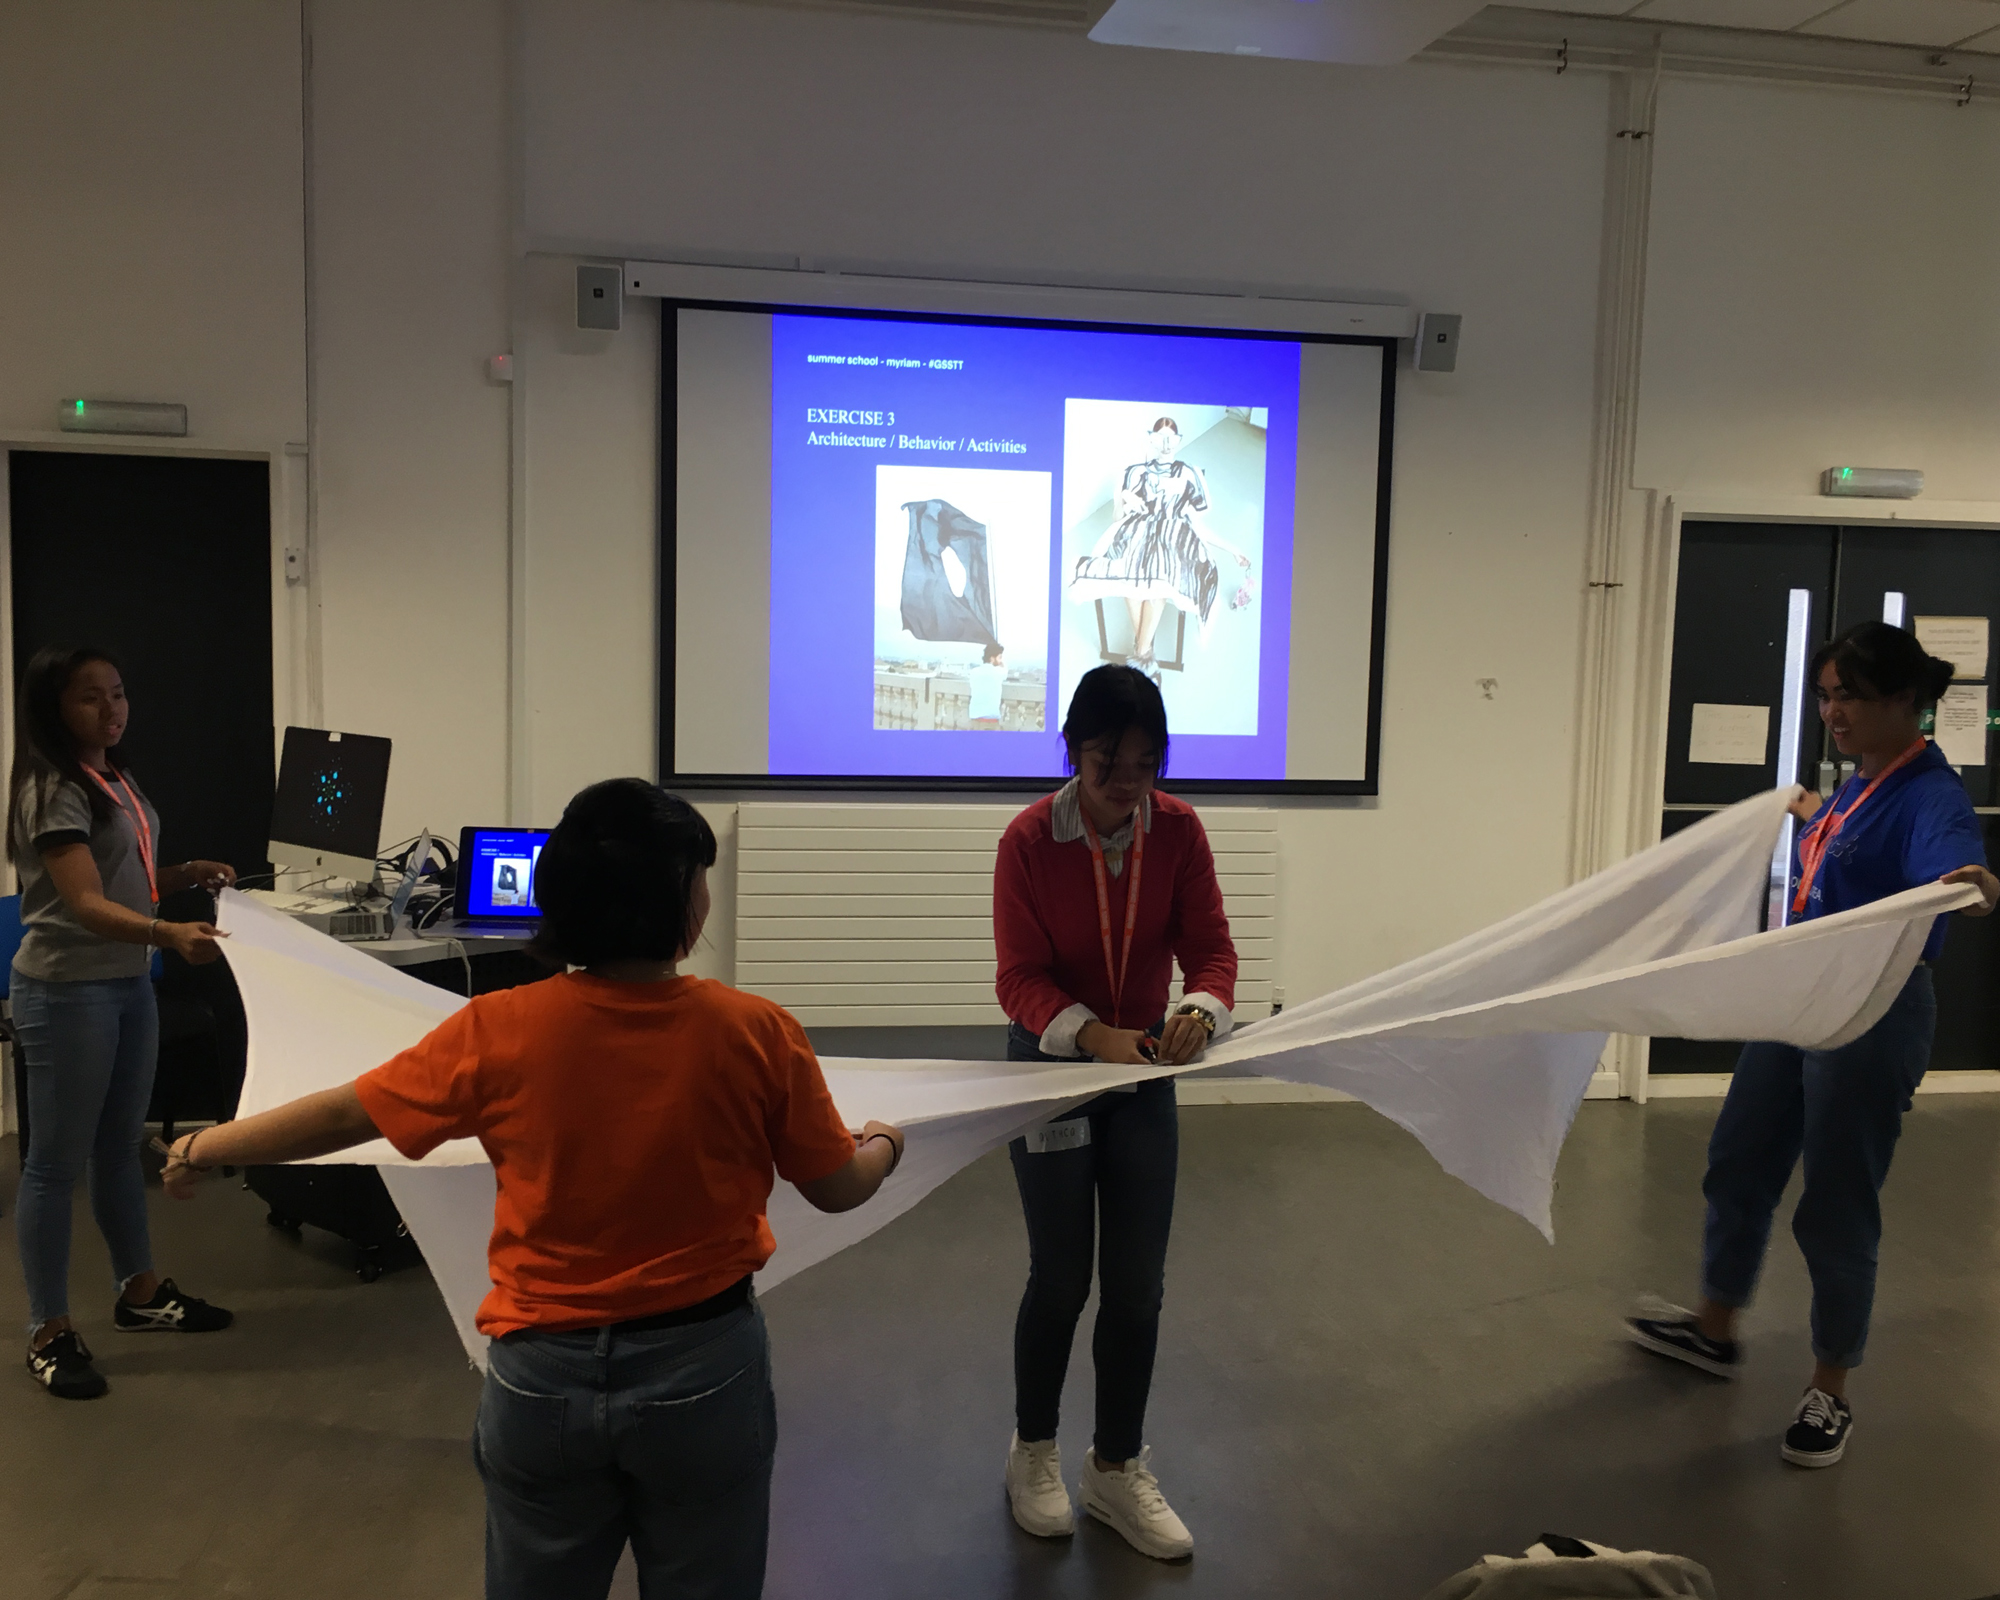 MCHS students learn, apply design thinking in workshop at Goldsmiths